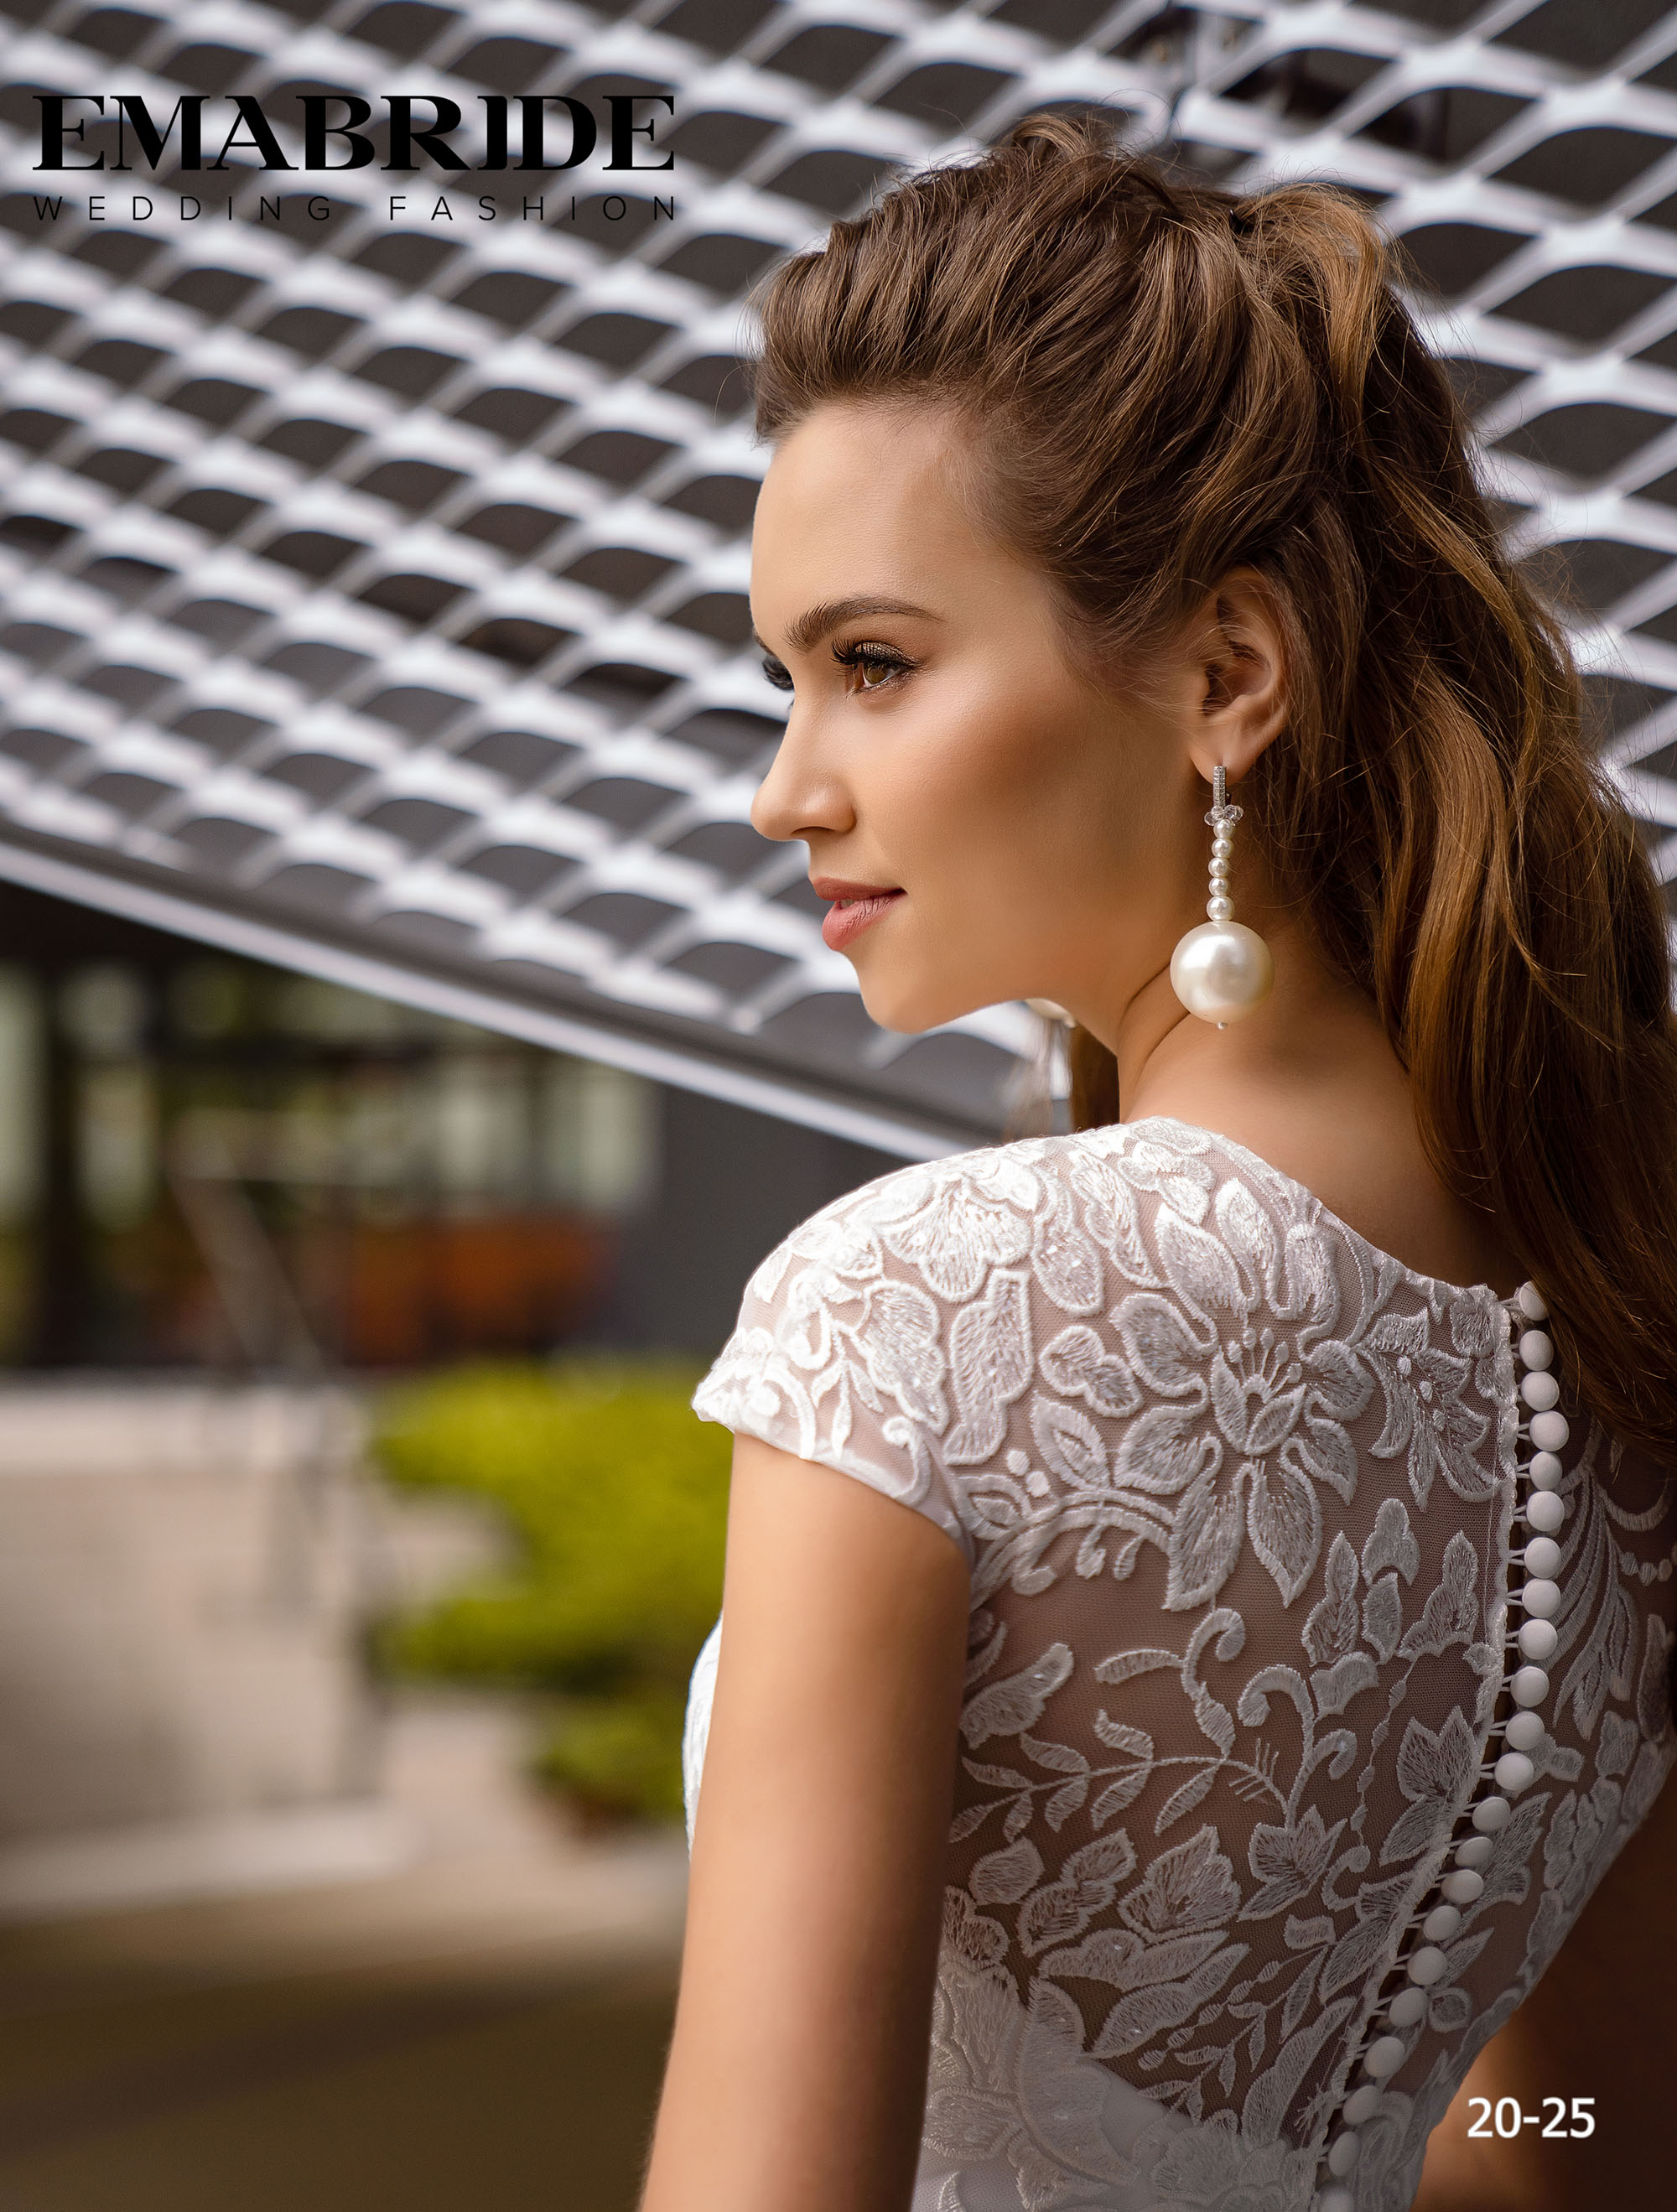 Model 20-25 | Buy wedding dresses wholesale by the ukrainian manufacturer Emabride-4